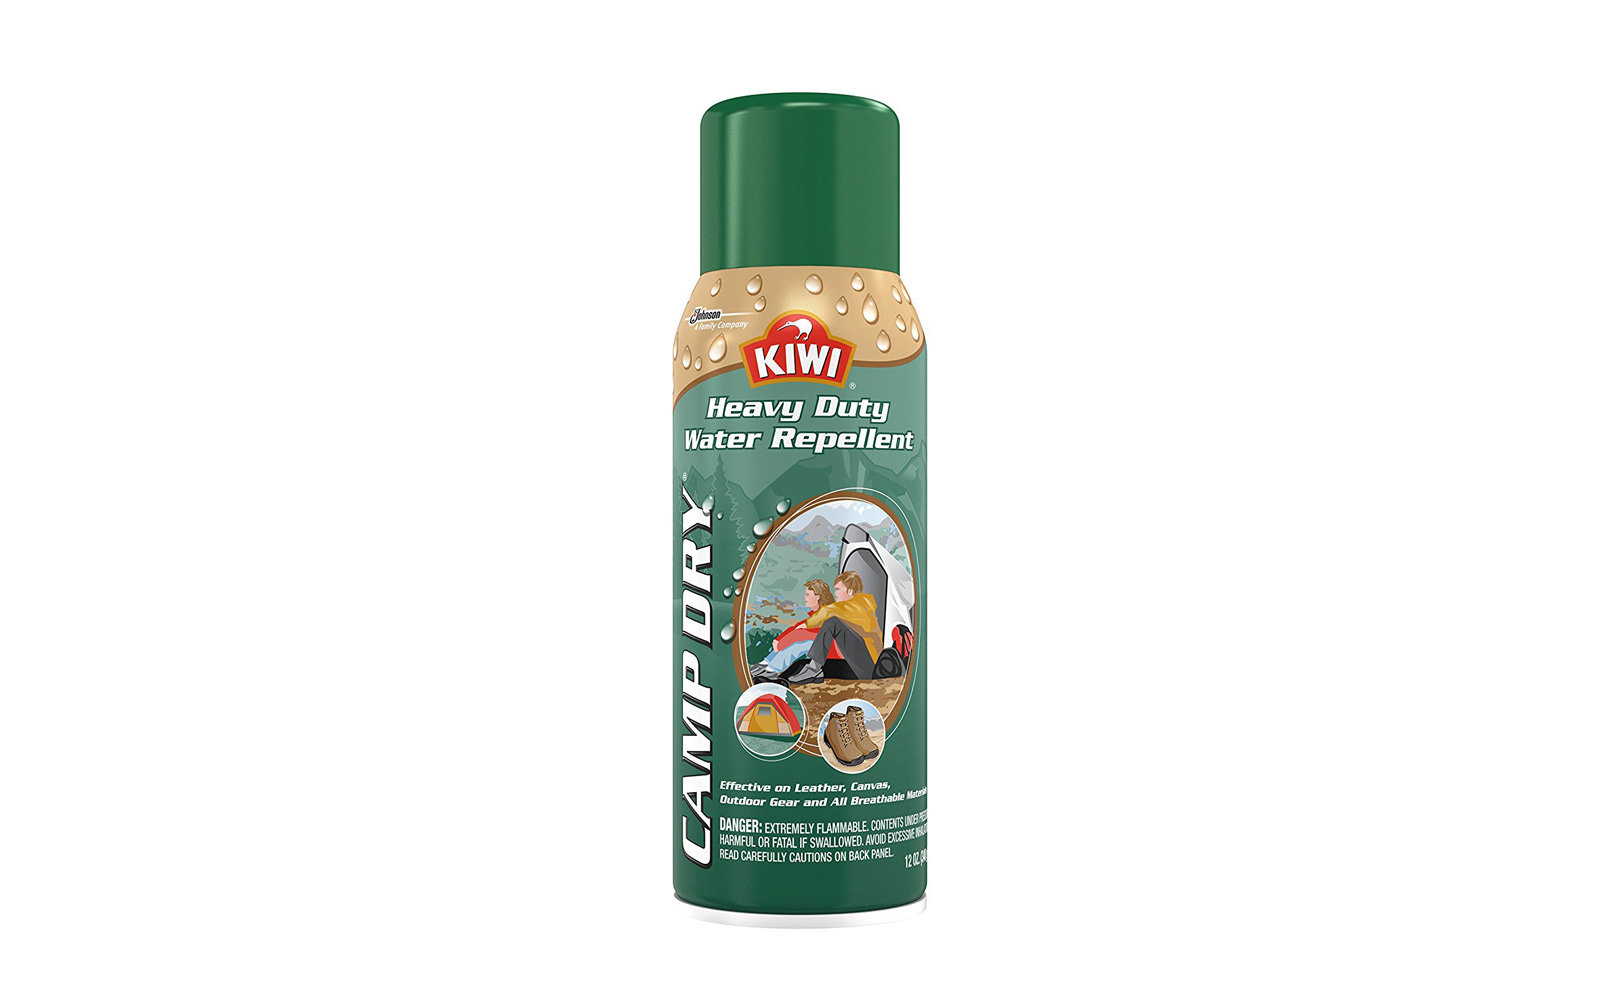 To Waterproof Pretty Much Everything: Kiwi Camp Dry Heavy Duty Water Repellent